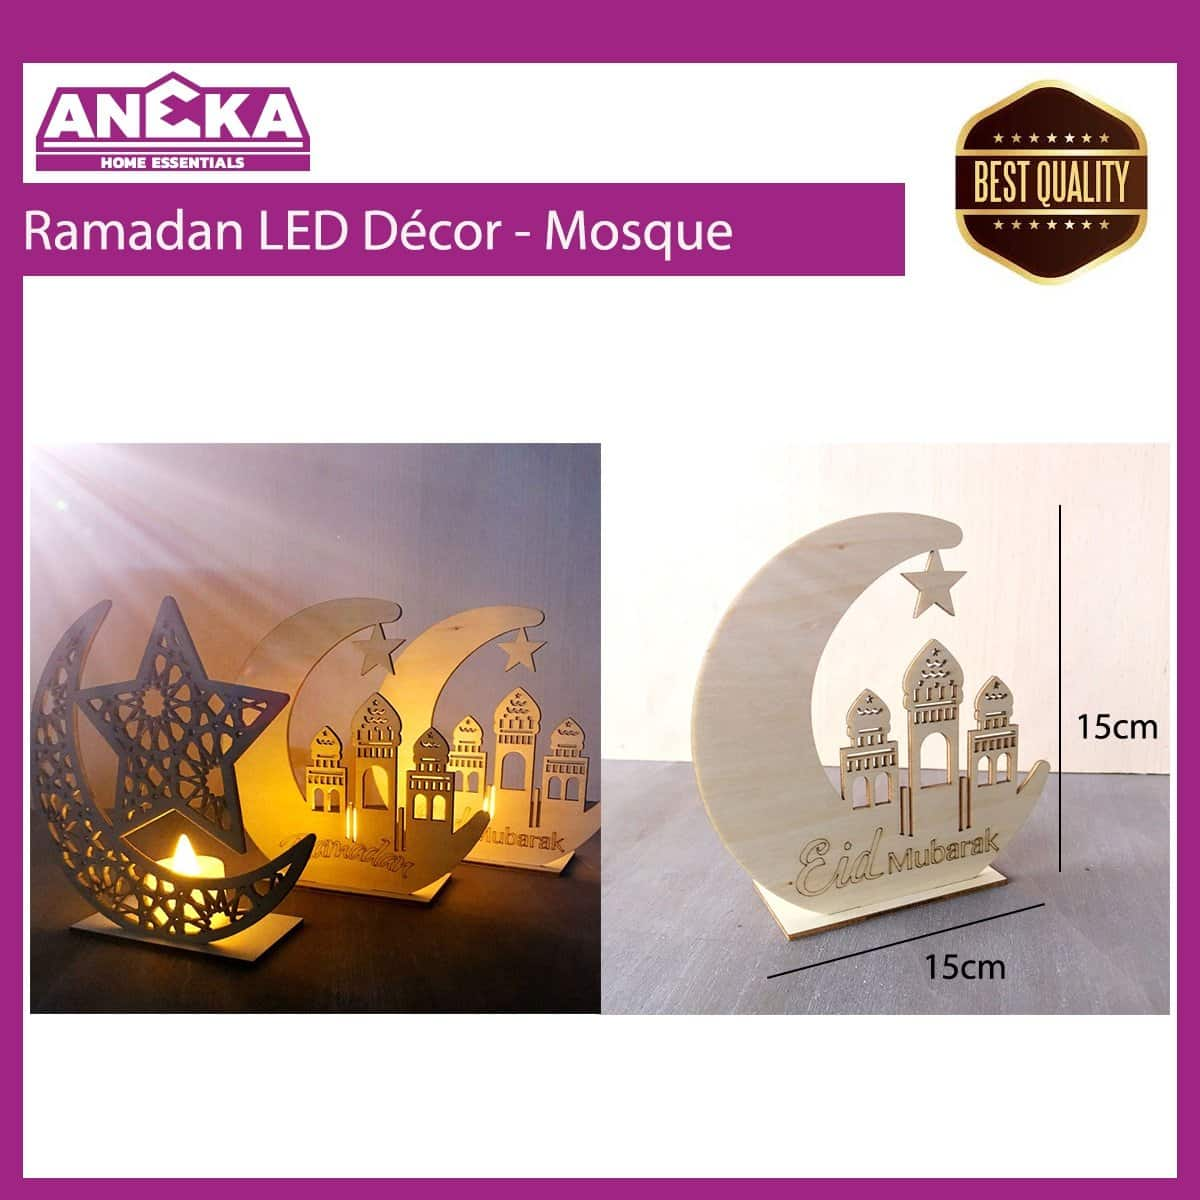 Ramadan LED Décor - Mosque